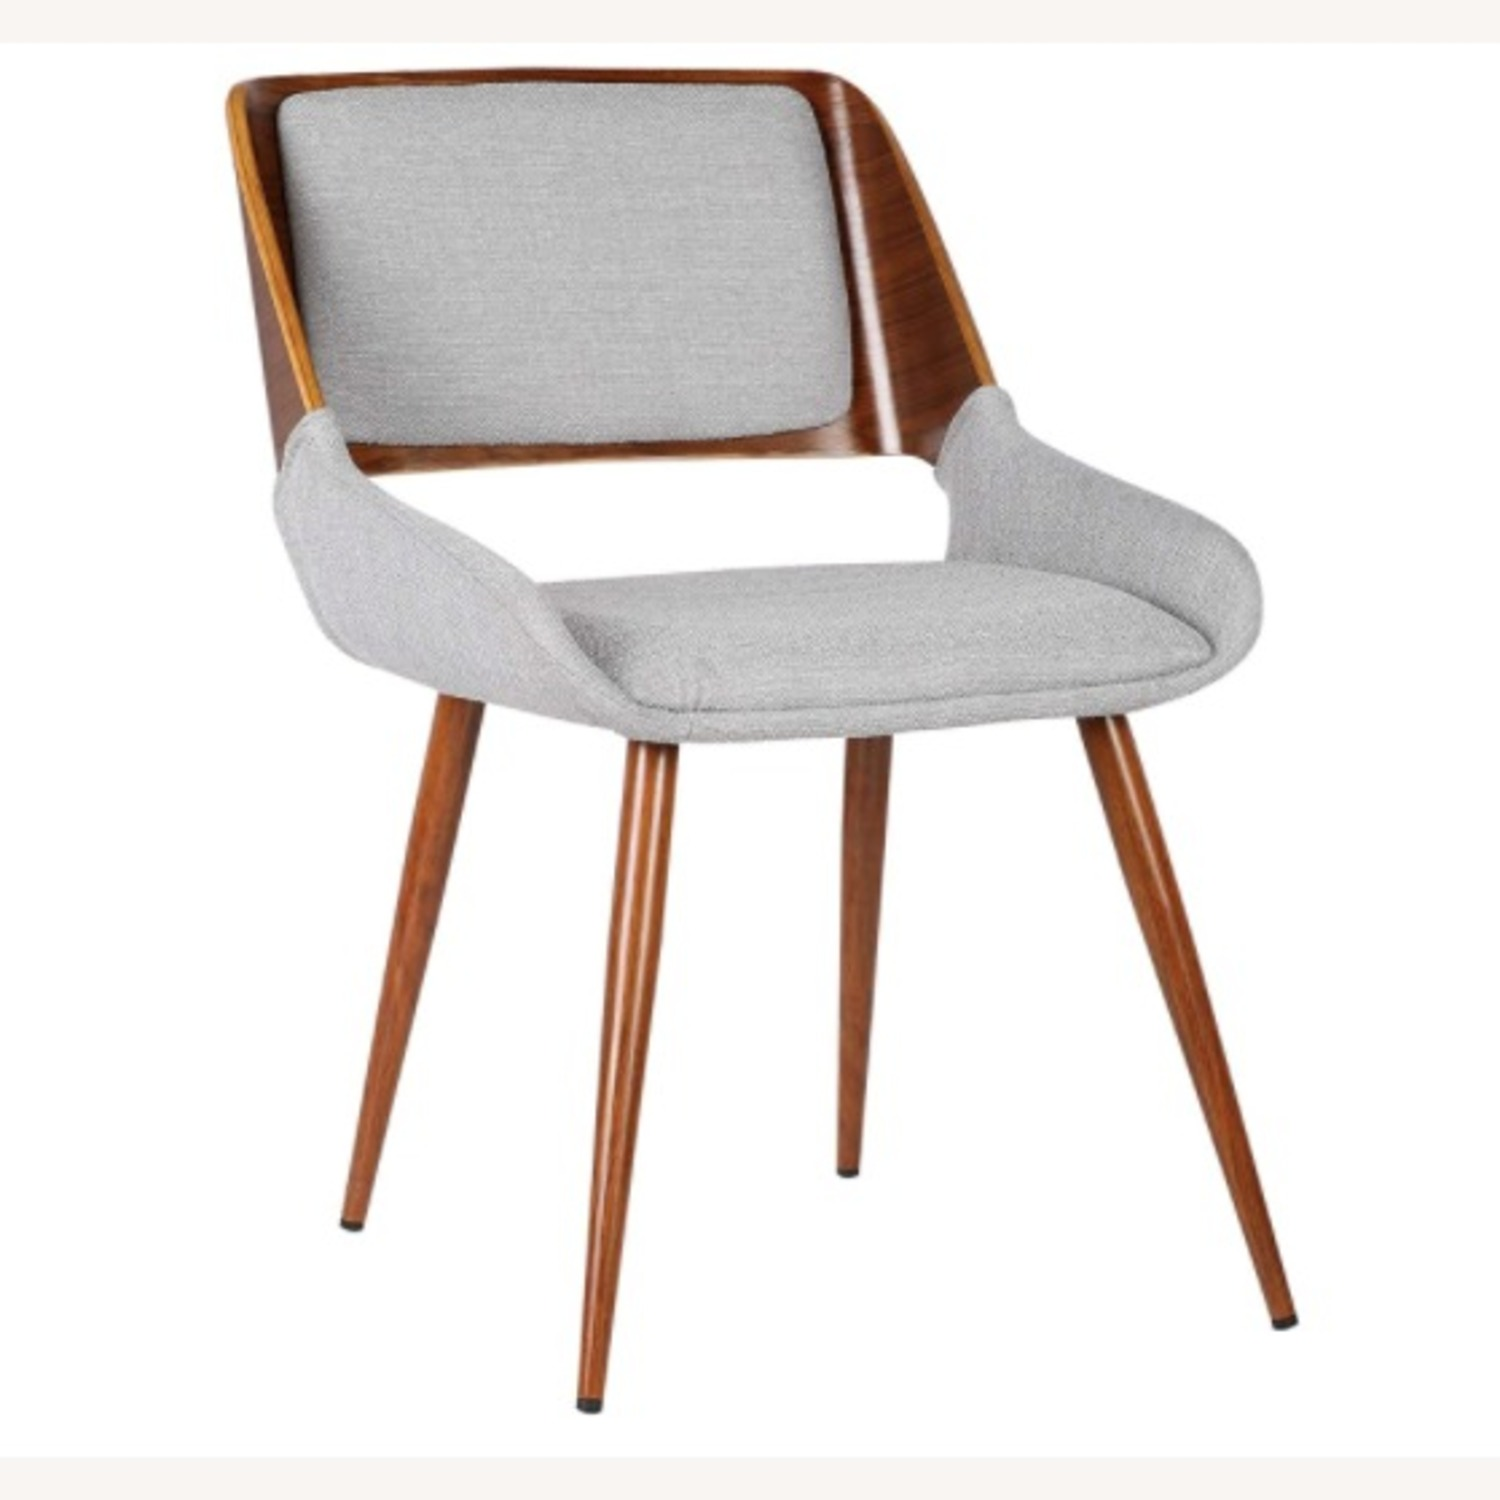 Mid Century Modern Wooden Grey Dining Chair - image-1